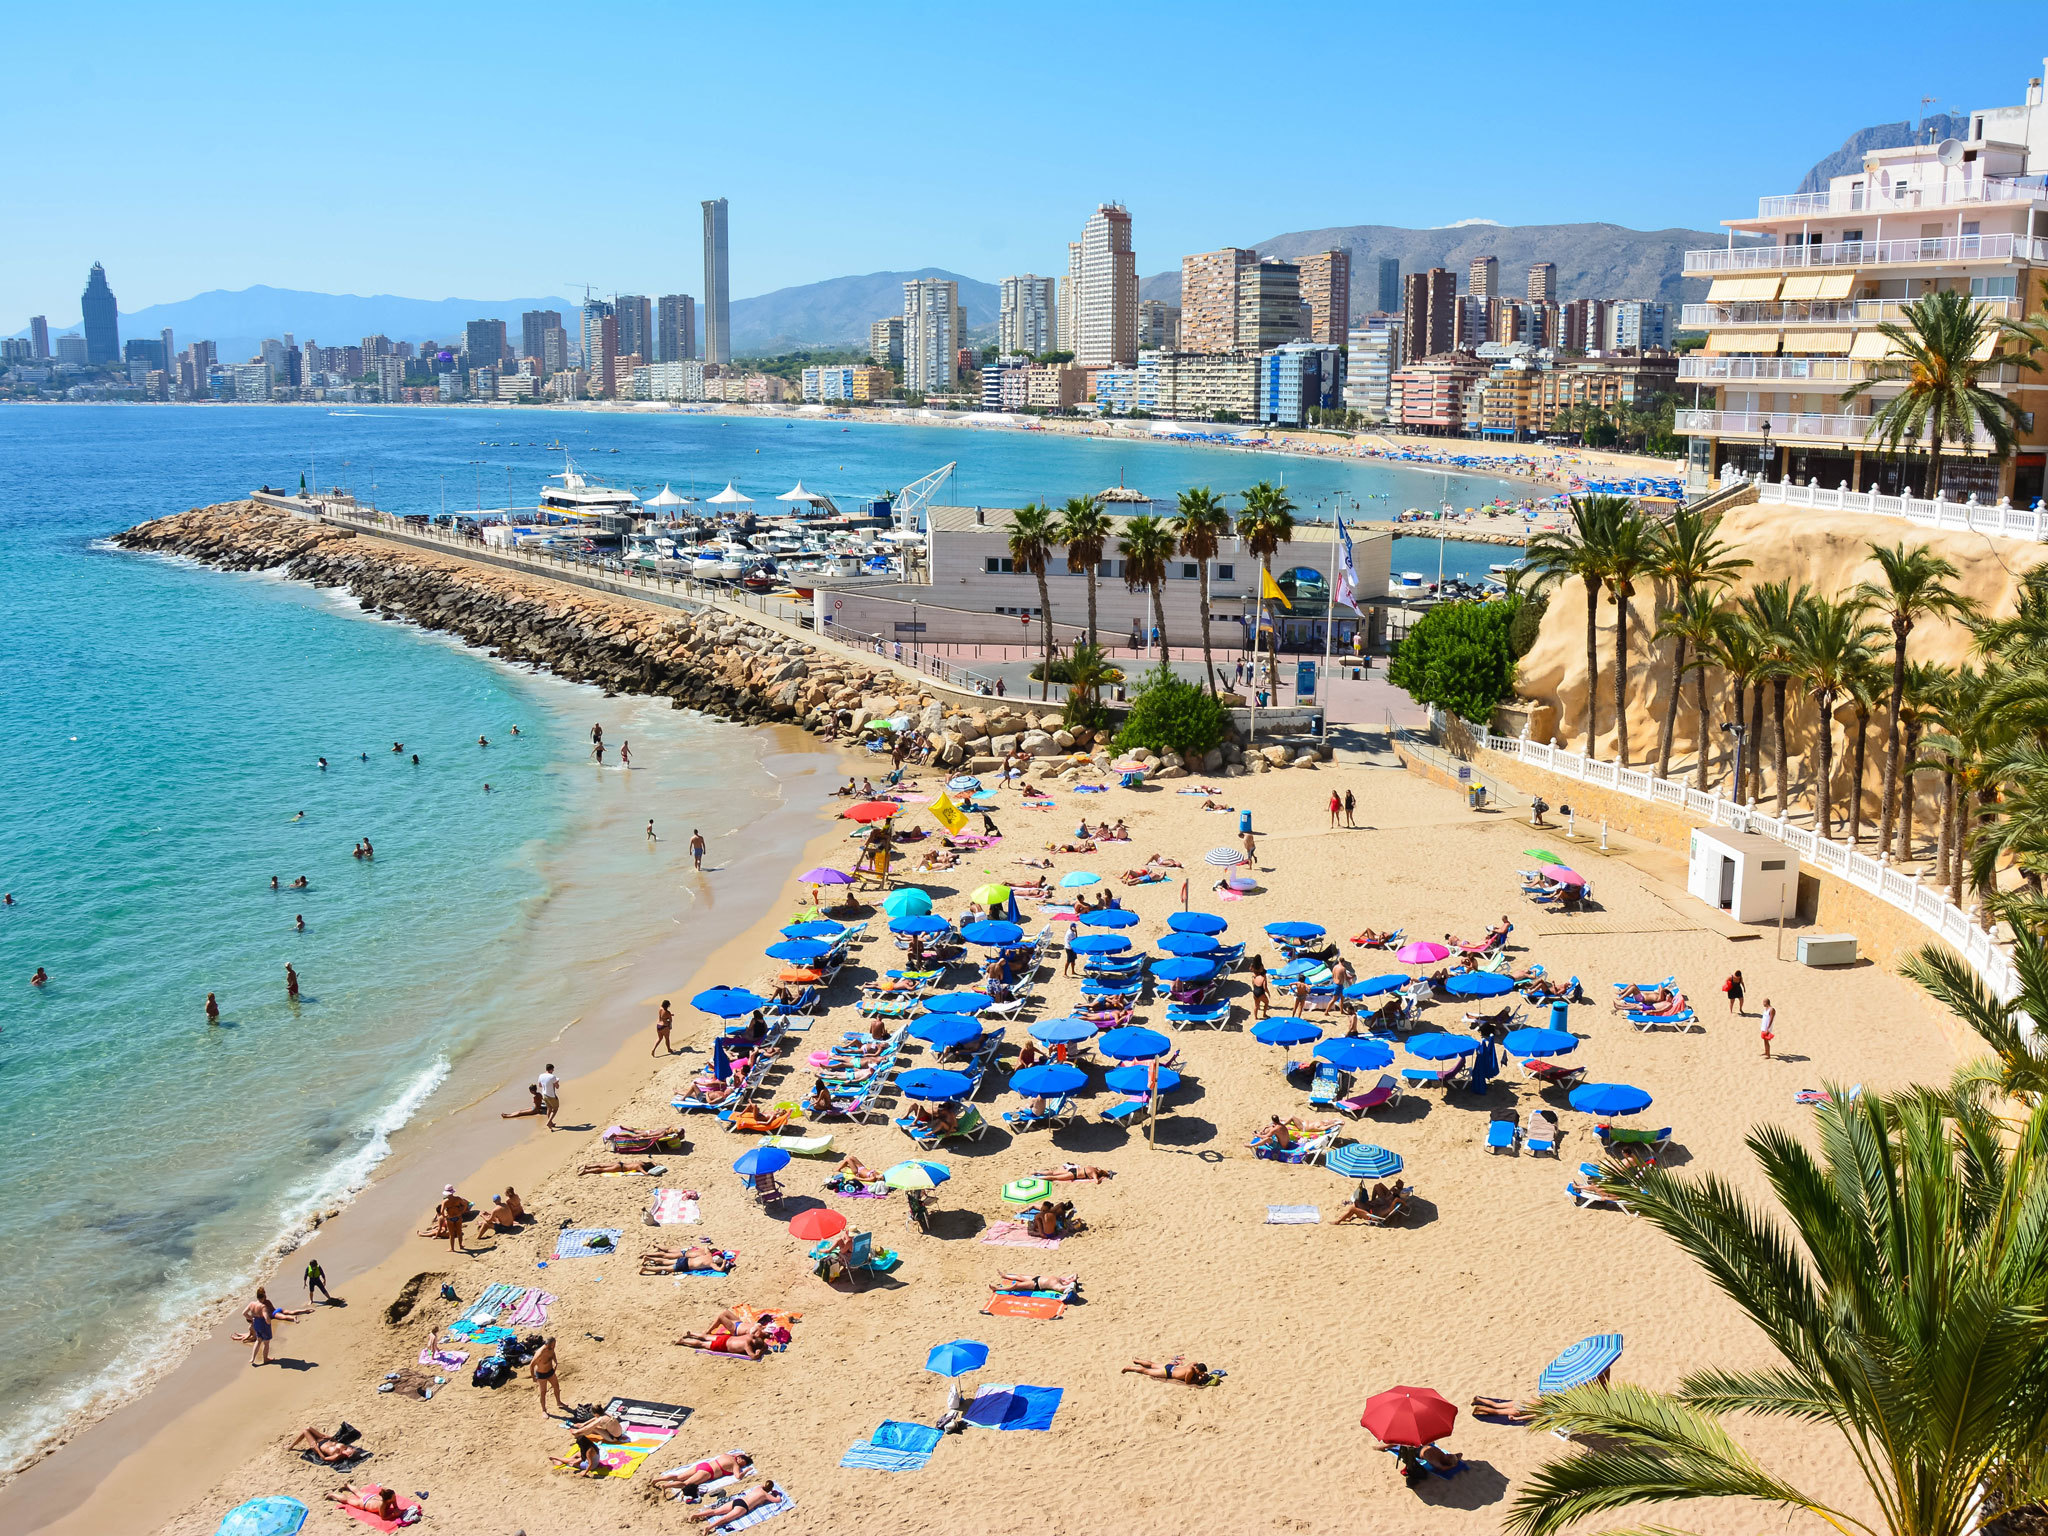 Playa de Poniente - Benidorm - Spain